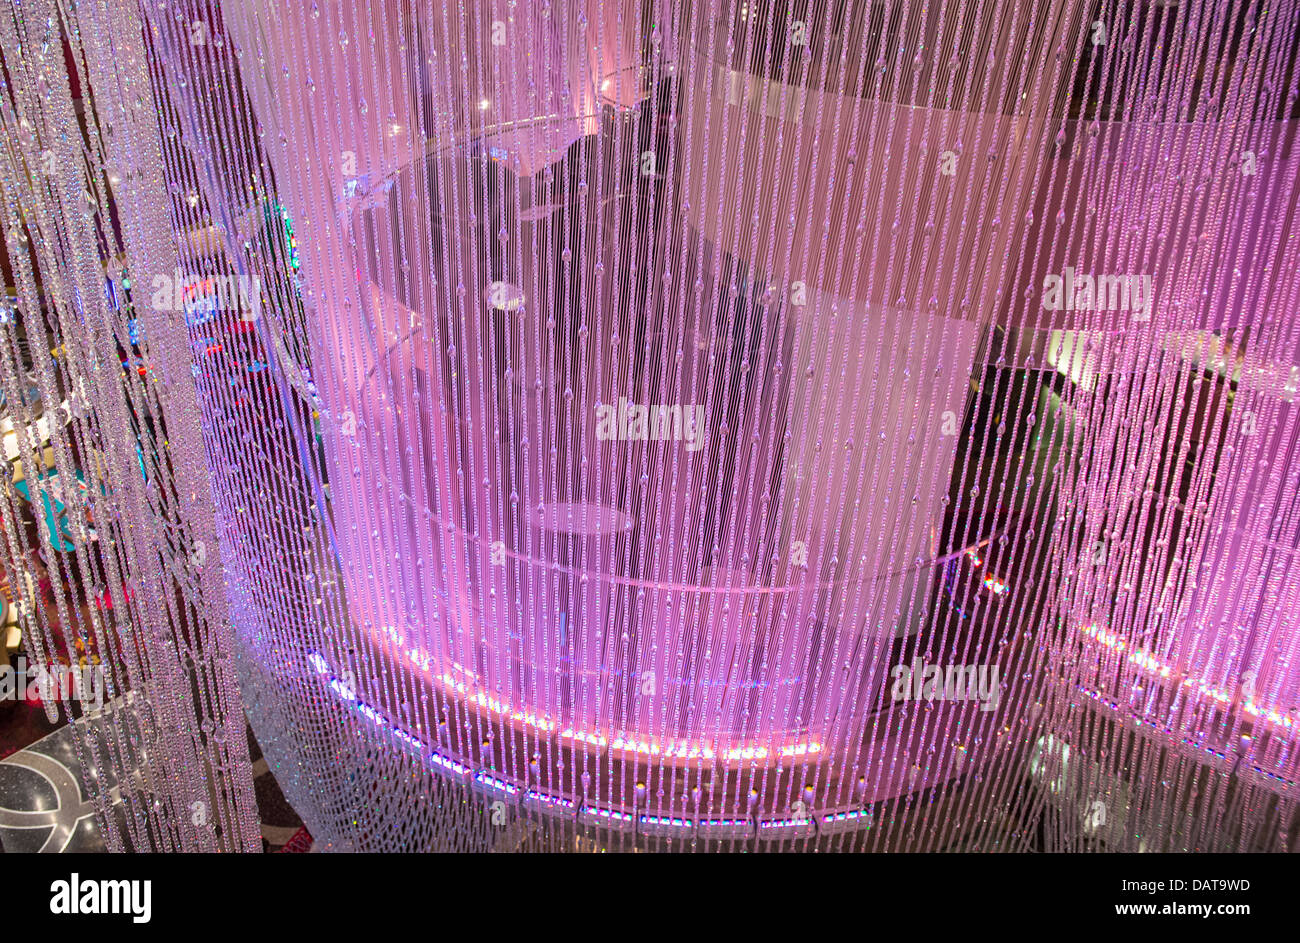 The chandelier bar at the cosmopolitan hotel casino in las vegas the chandelier bar at the cosmopolitan hotel casino in las vegas aloadofball Choice Image